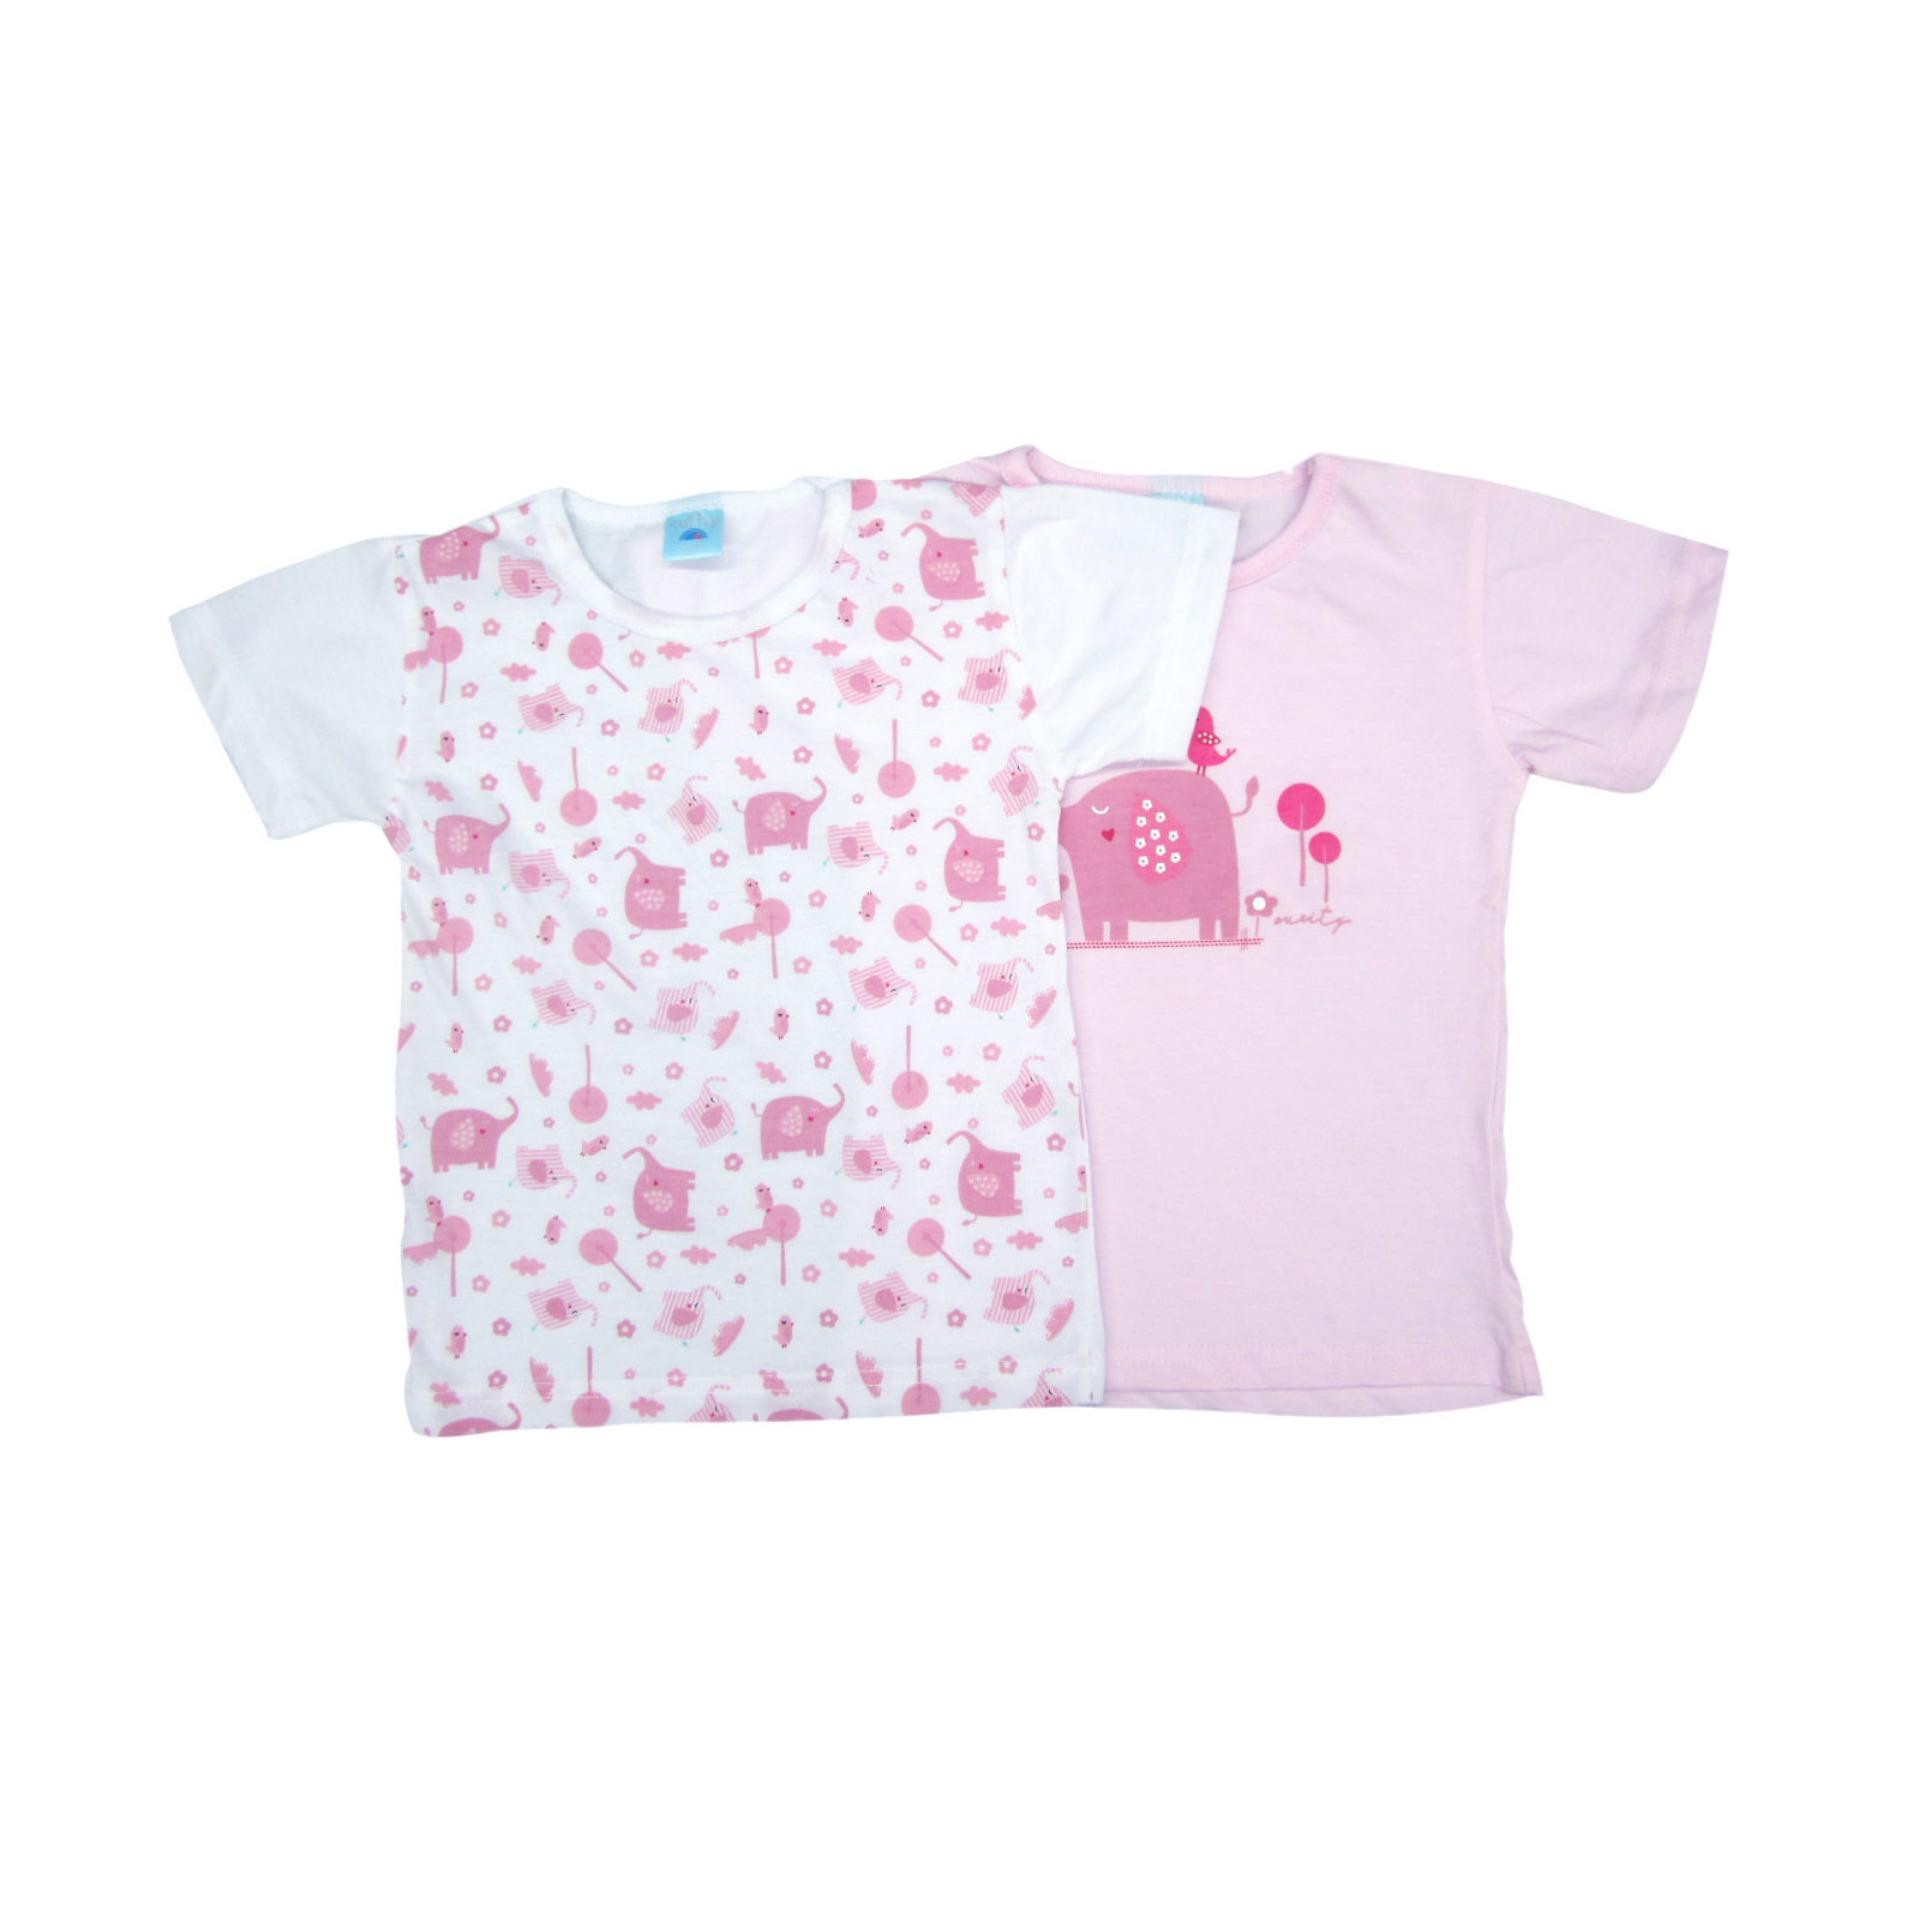 2 In 1 Curity Toddler T-Shirt For Girls Animal Printed 2t By Felcris.